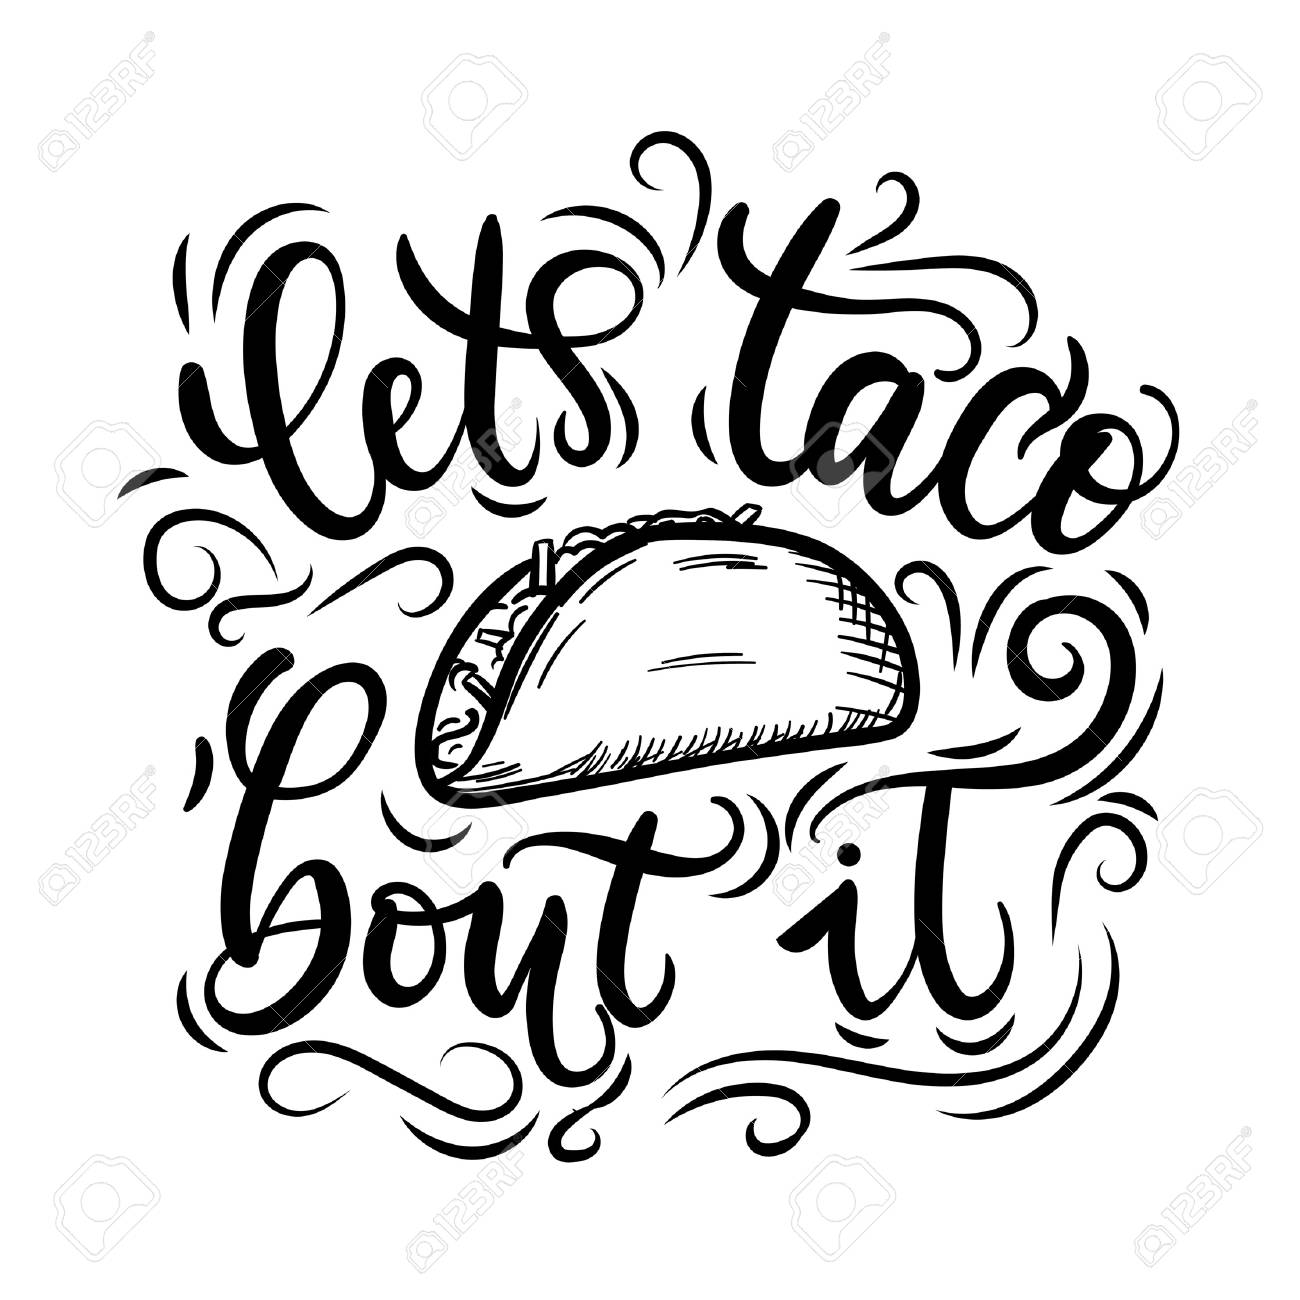 let s taco bout it tacos lettering poster with flourishes and rh 123rf com flourishes vector images flourish vector images